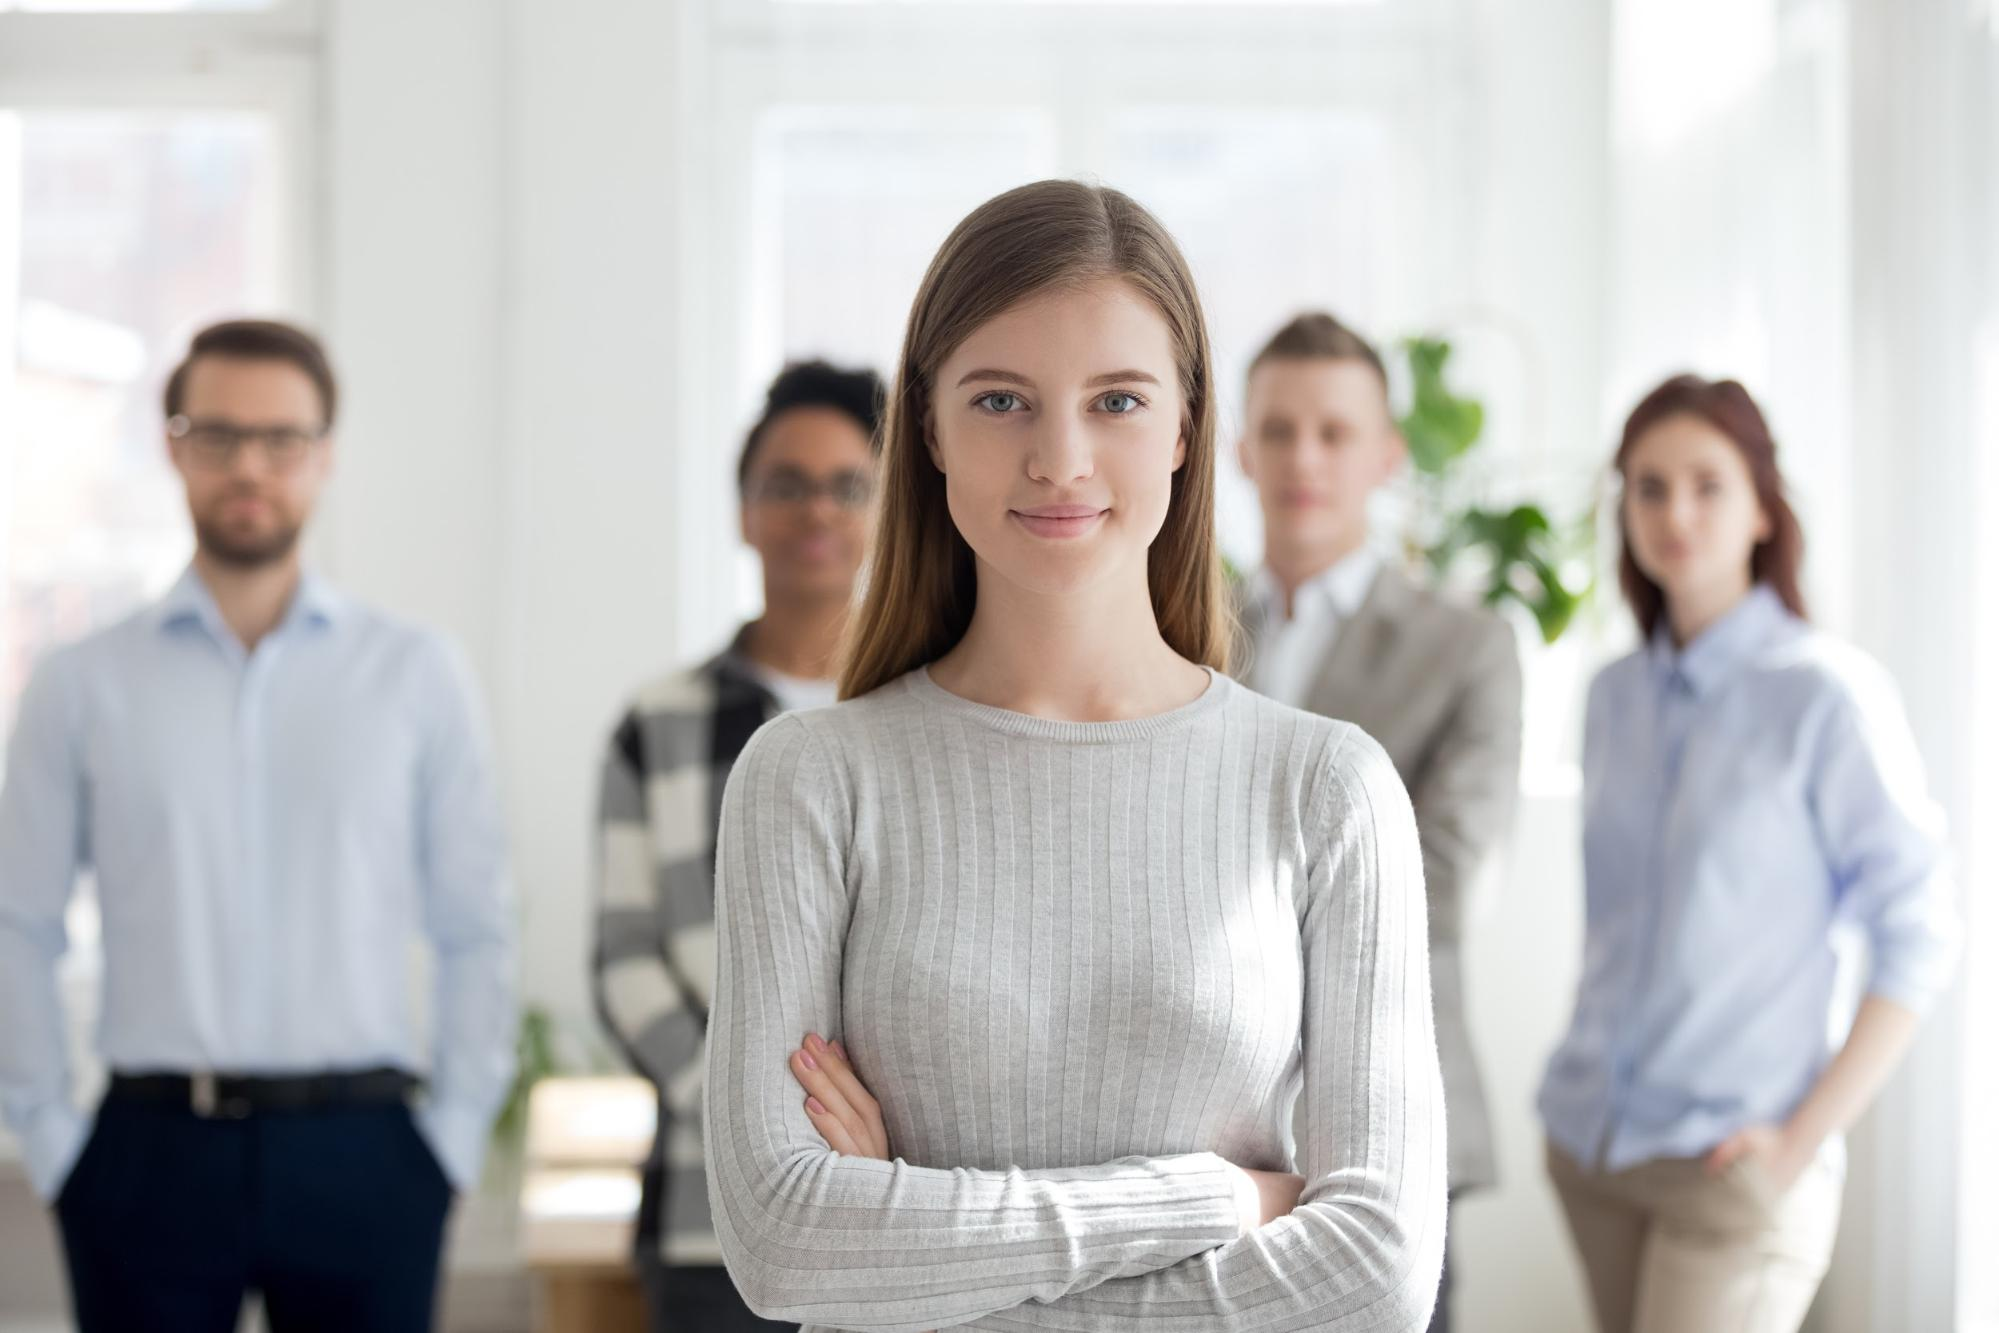 human resources jobs: Female looking at the camera and her team at the background